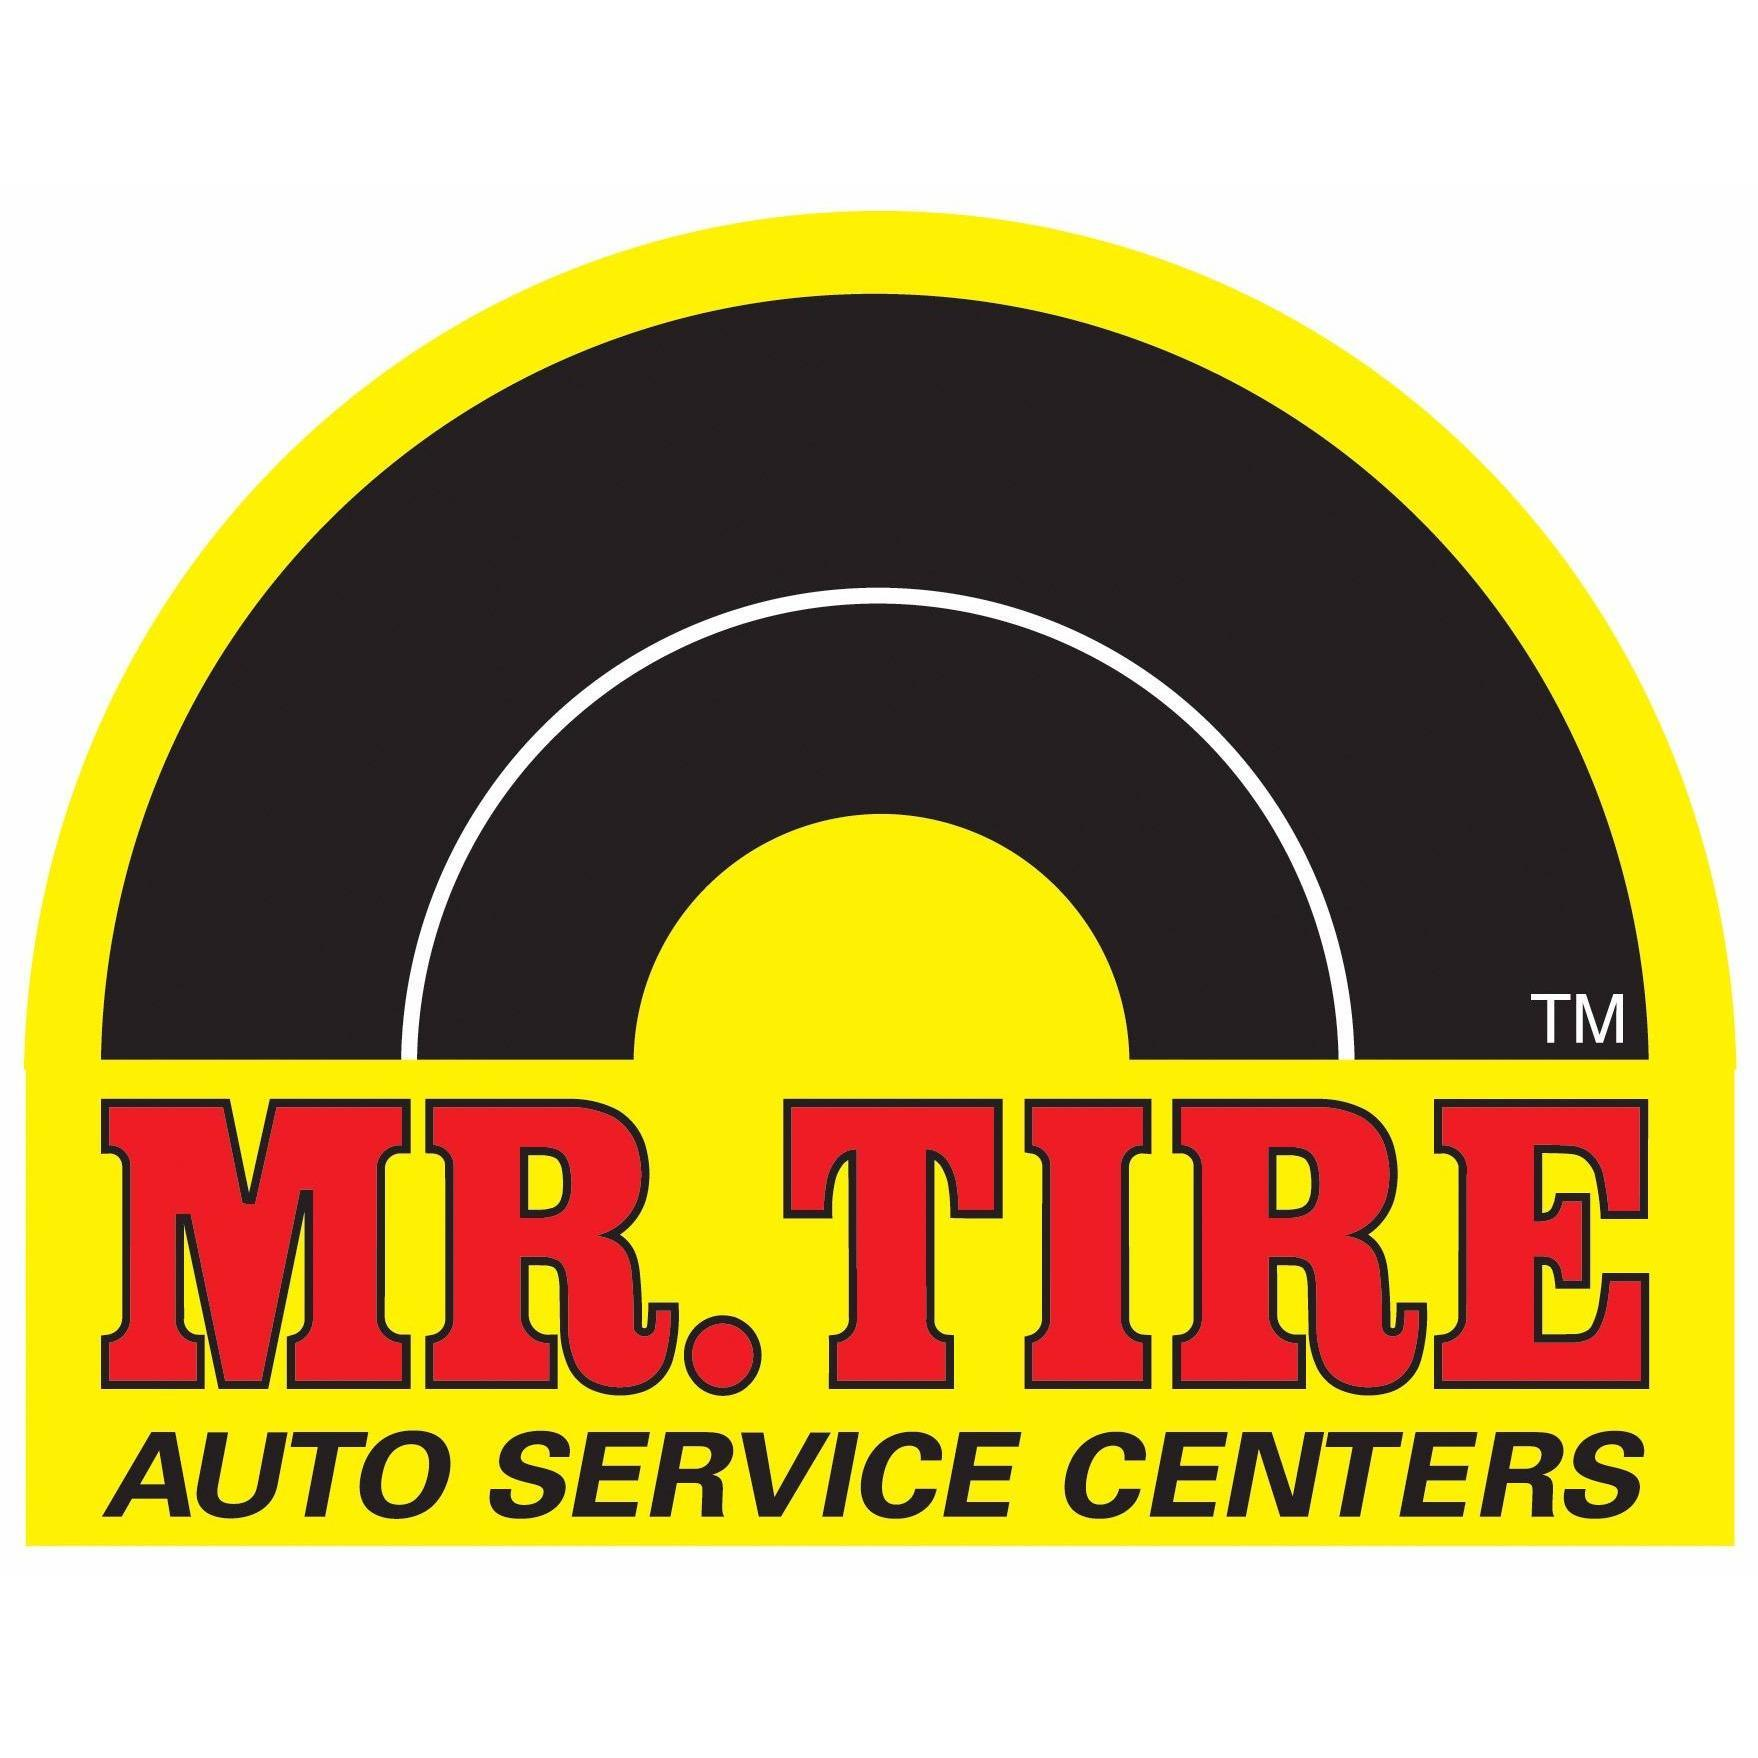 Mr tire auto service centers at 315 s dekalb street shelby nc brakes tires automotive maintenance and repair